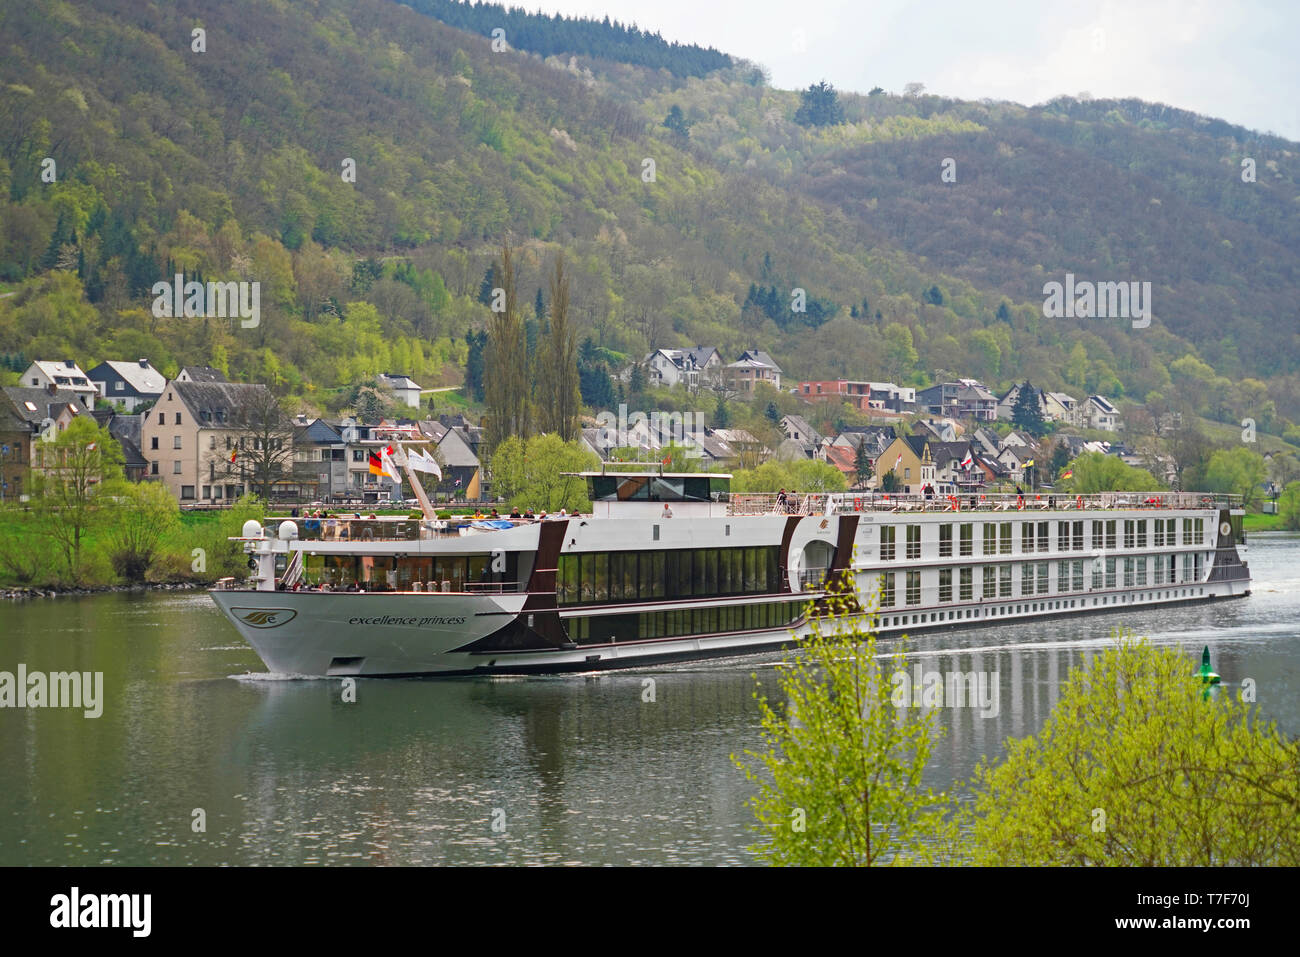 Excellent Princess river cruise ship on Mosel River in Germany - Stock Image